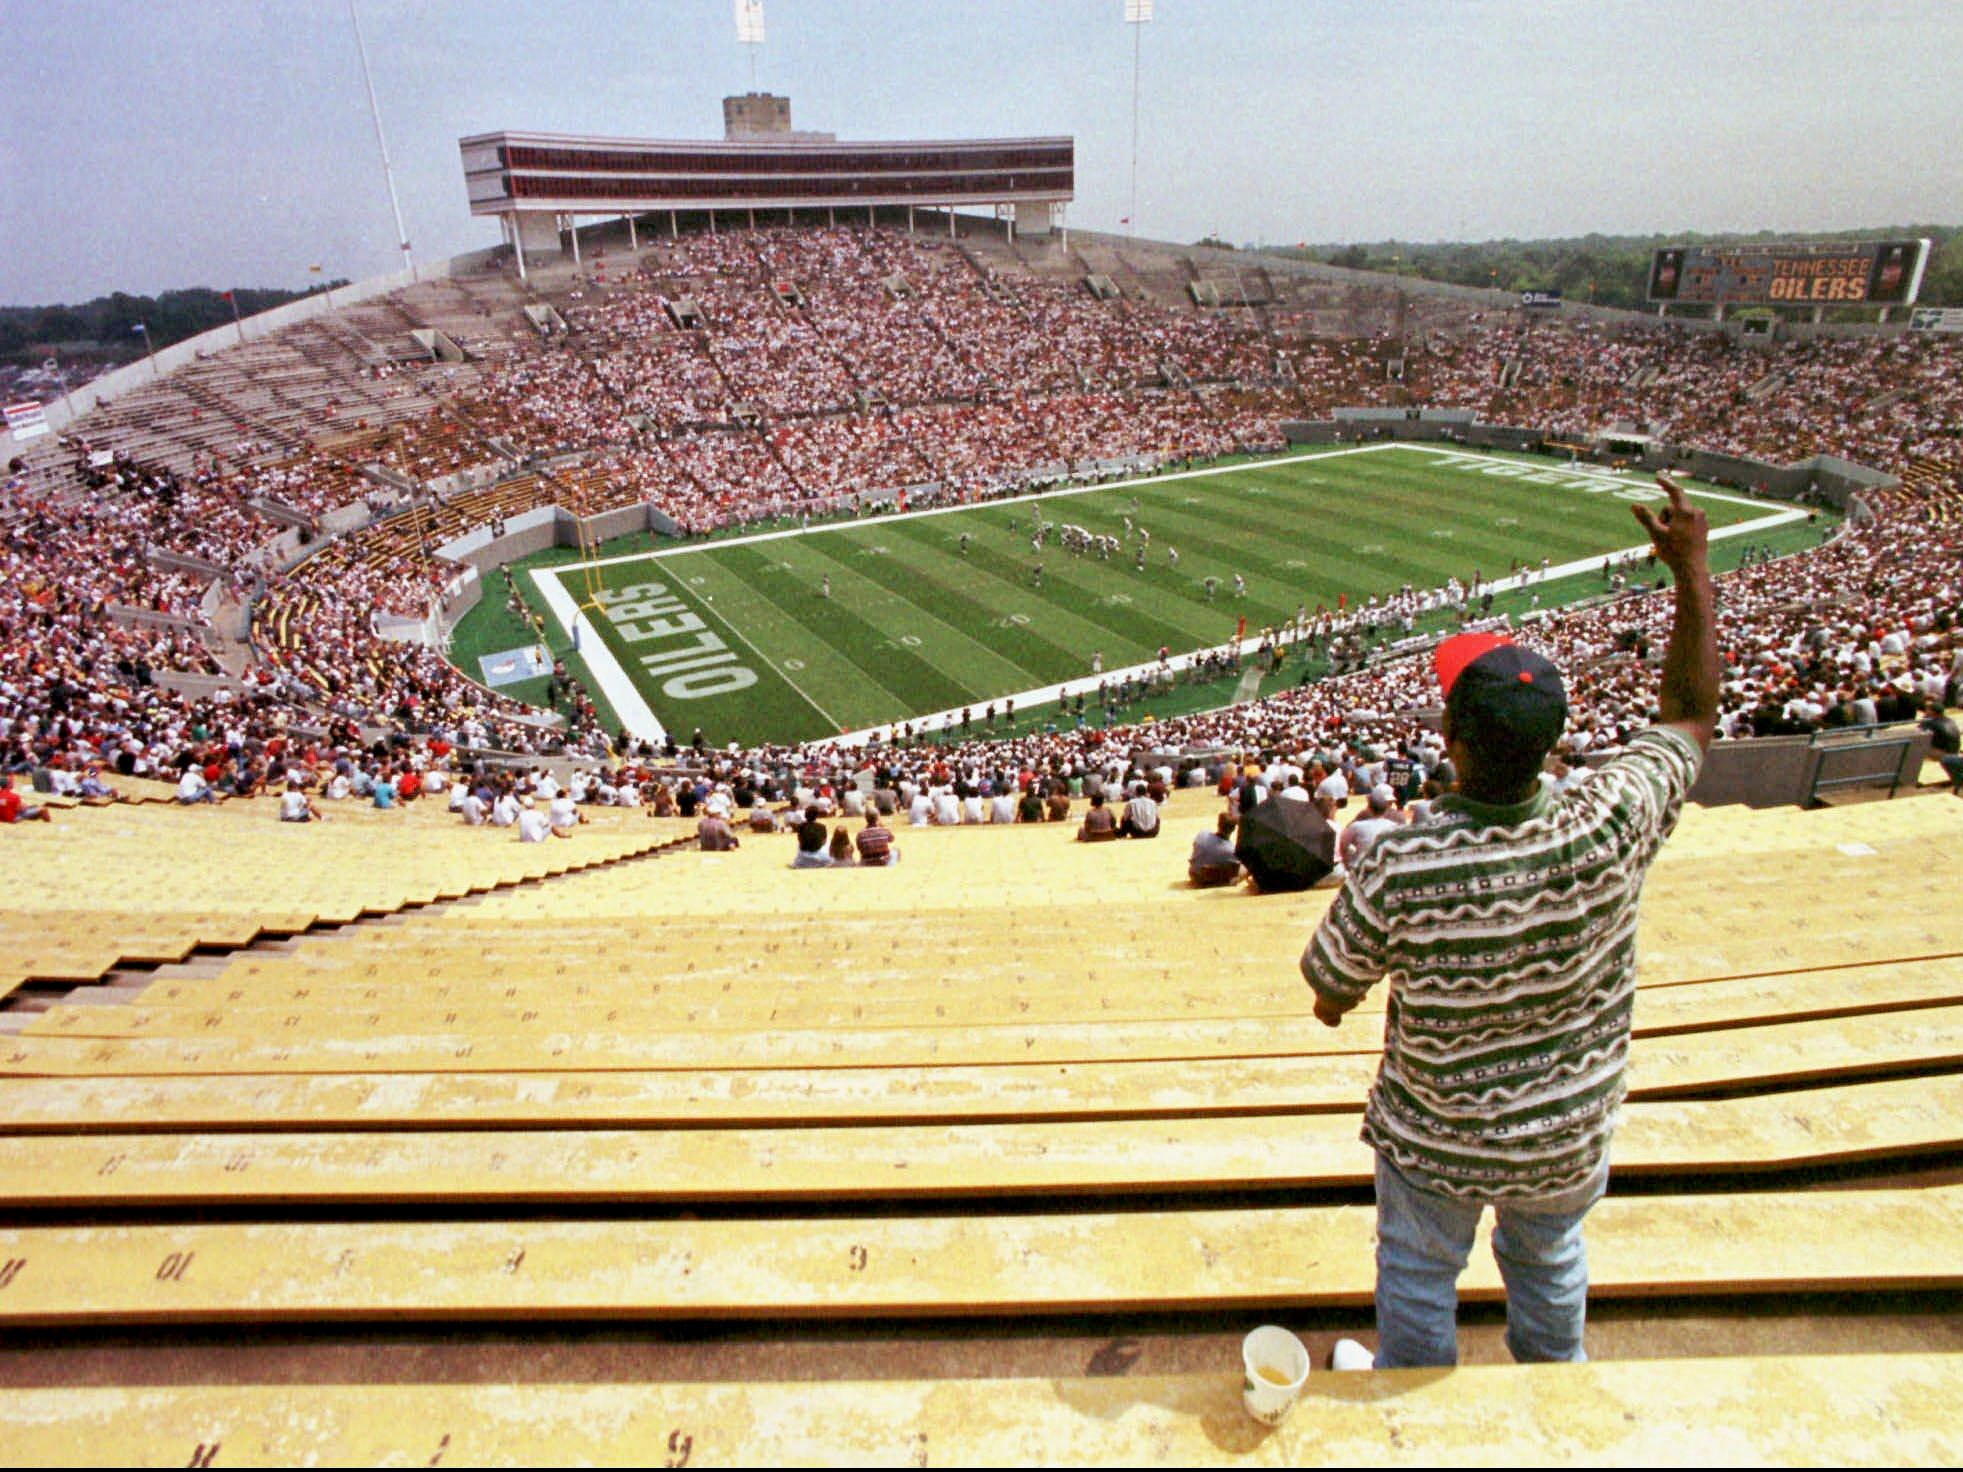 A lone fan surrounded by empty seats cheers on the Tennessee Oilers at their opening game against the Oakland Raiders at Liberty Bowl Stadium in Memphis on Aug. 31, 1997. The Oilers drew an NFL-low crowd of 30,171 fans for the game, less than half the capacity of the stadium.